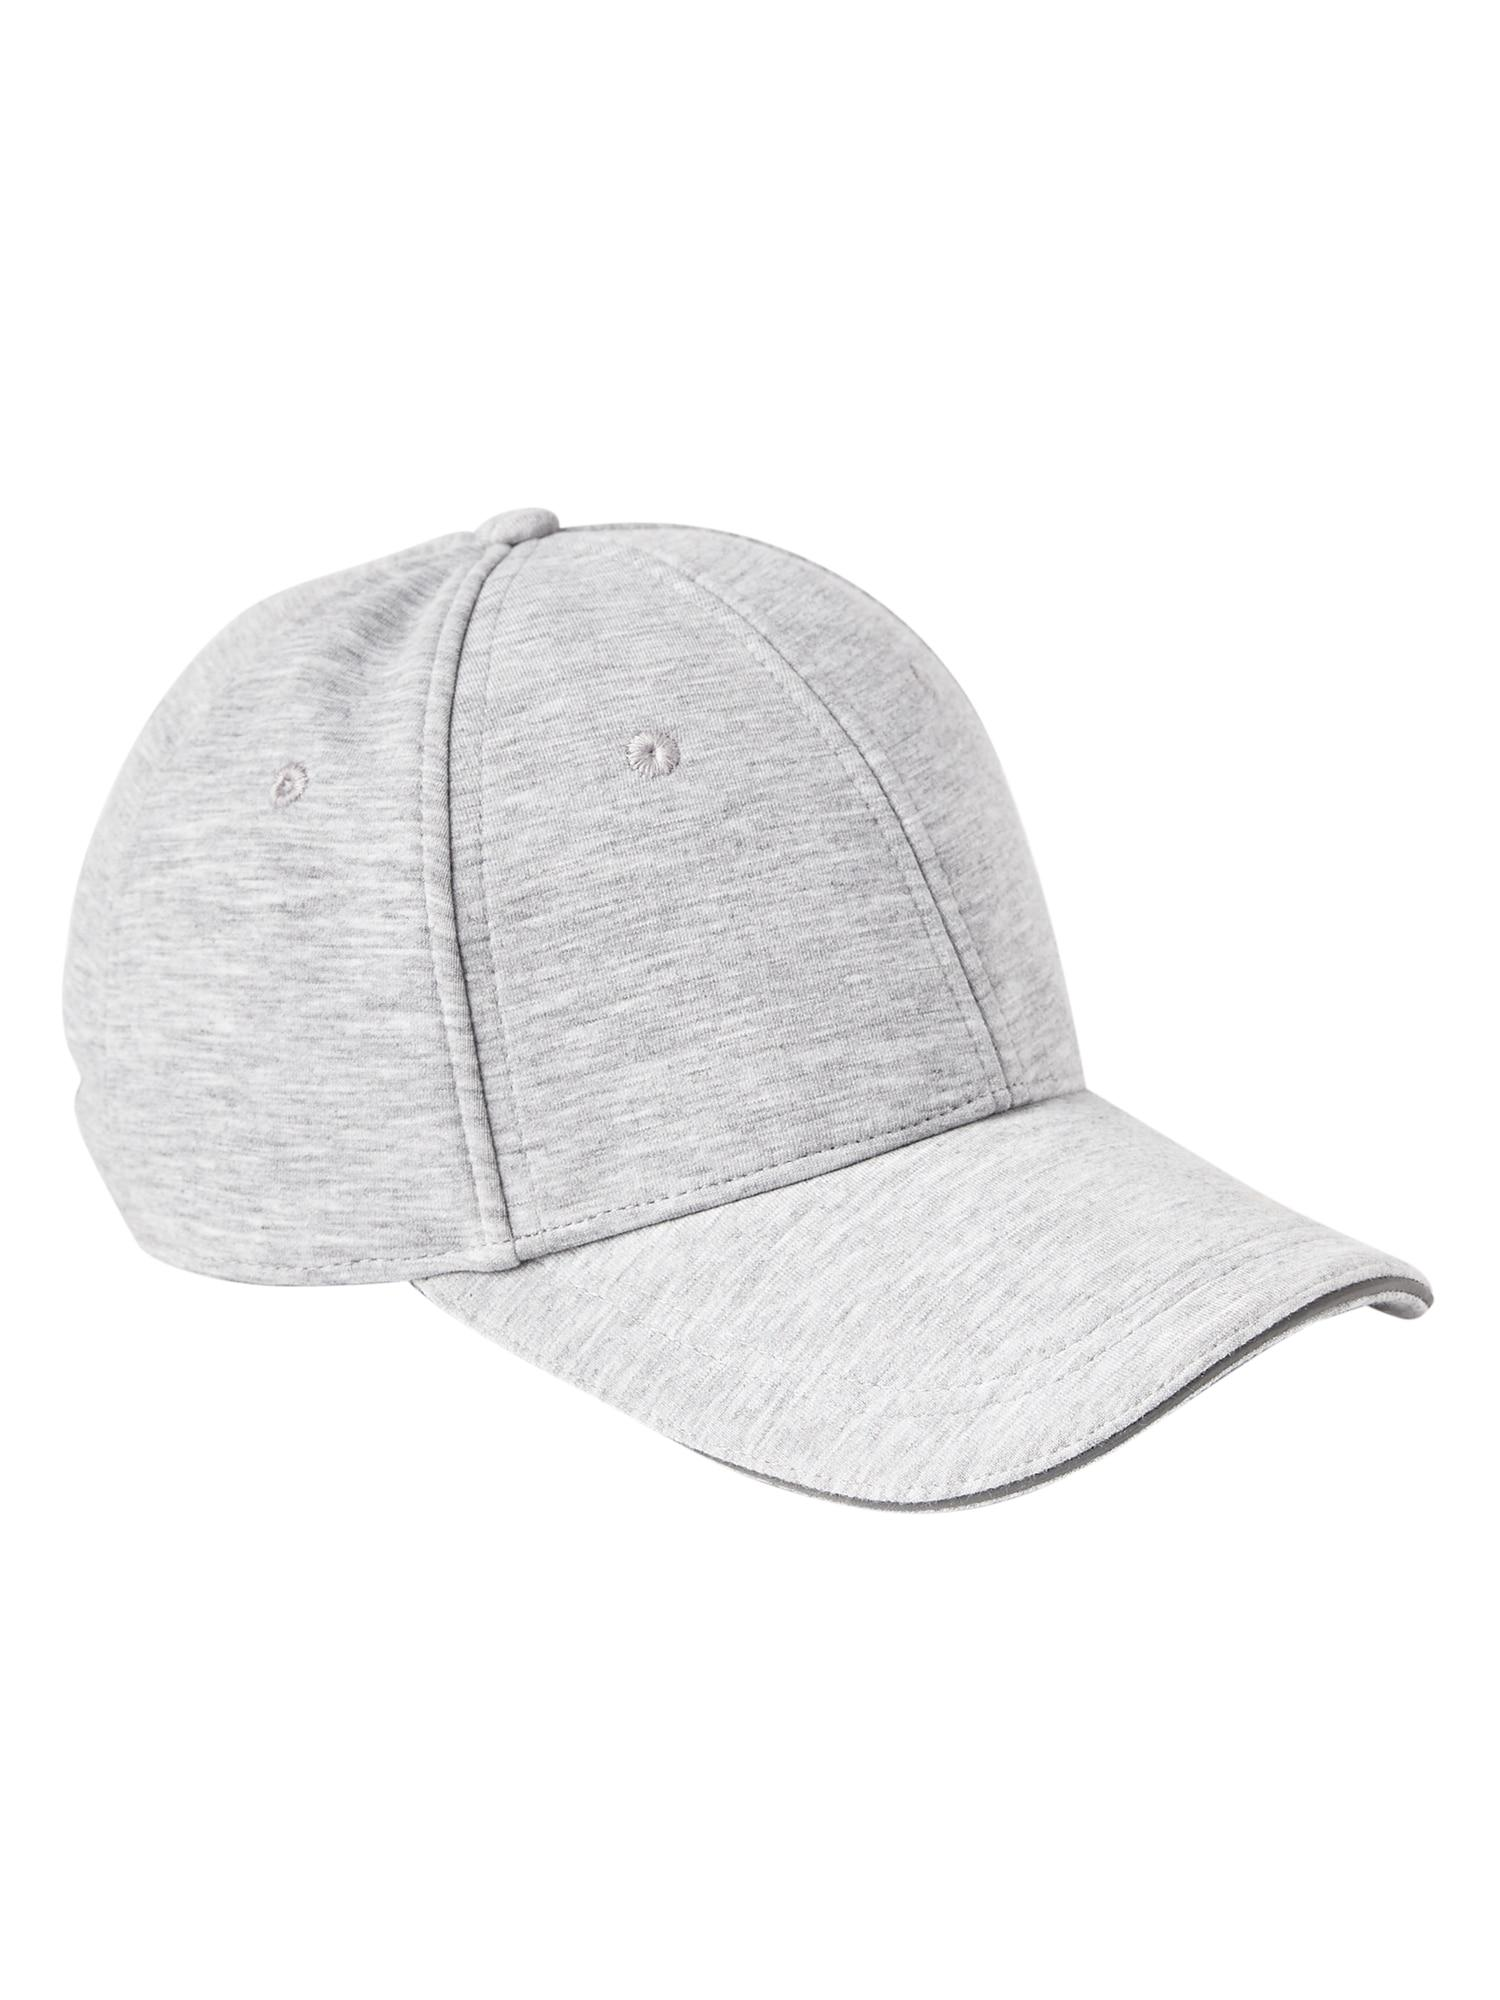 Lyst - Athleta Everyday Cap in Gray ef9ba47ecba